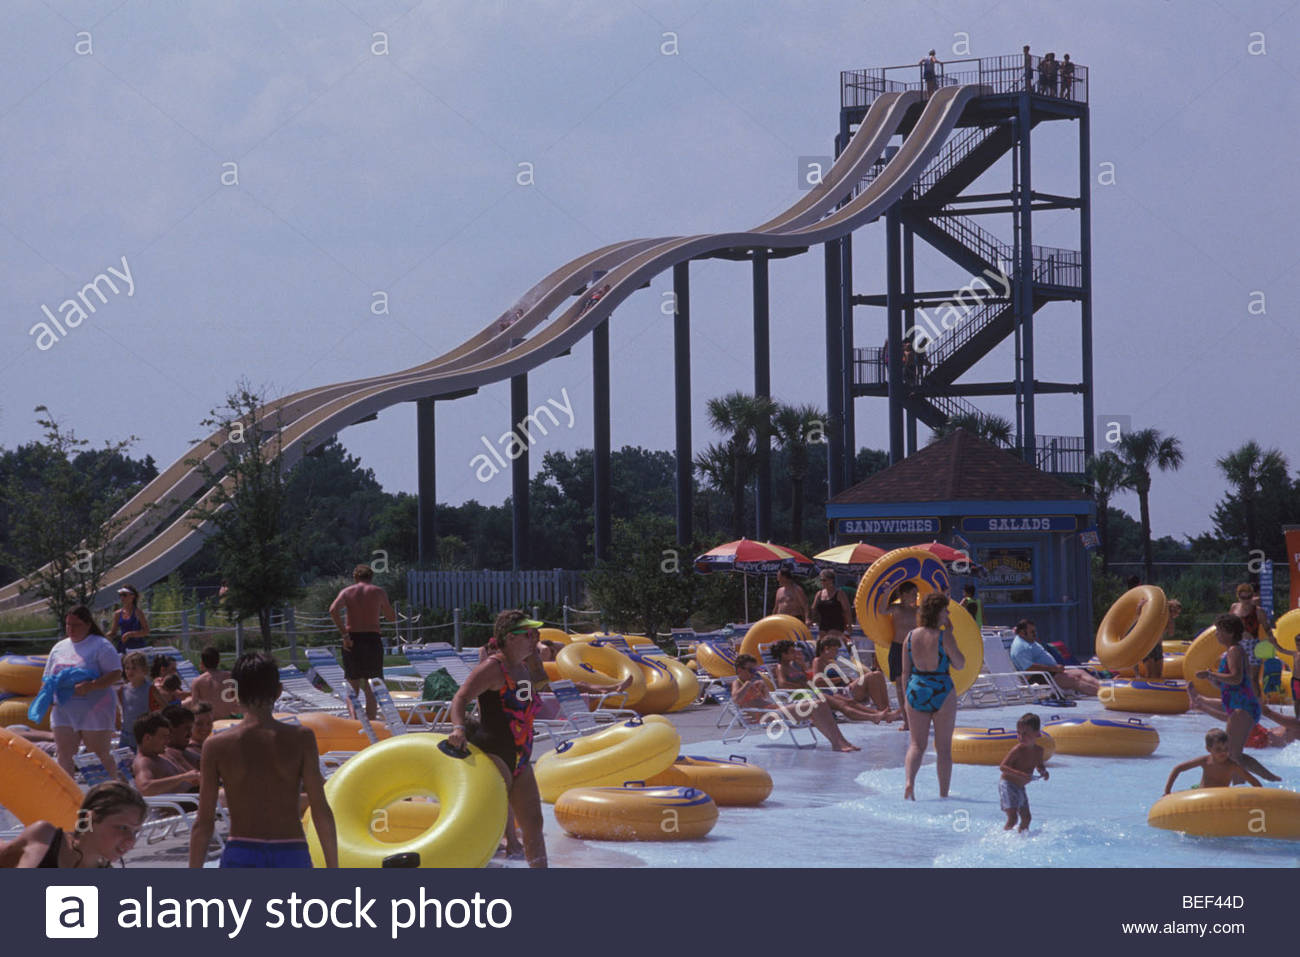 Summer Waves Water Park In Jekyll Island, Georgia Stock Photo ...